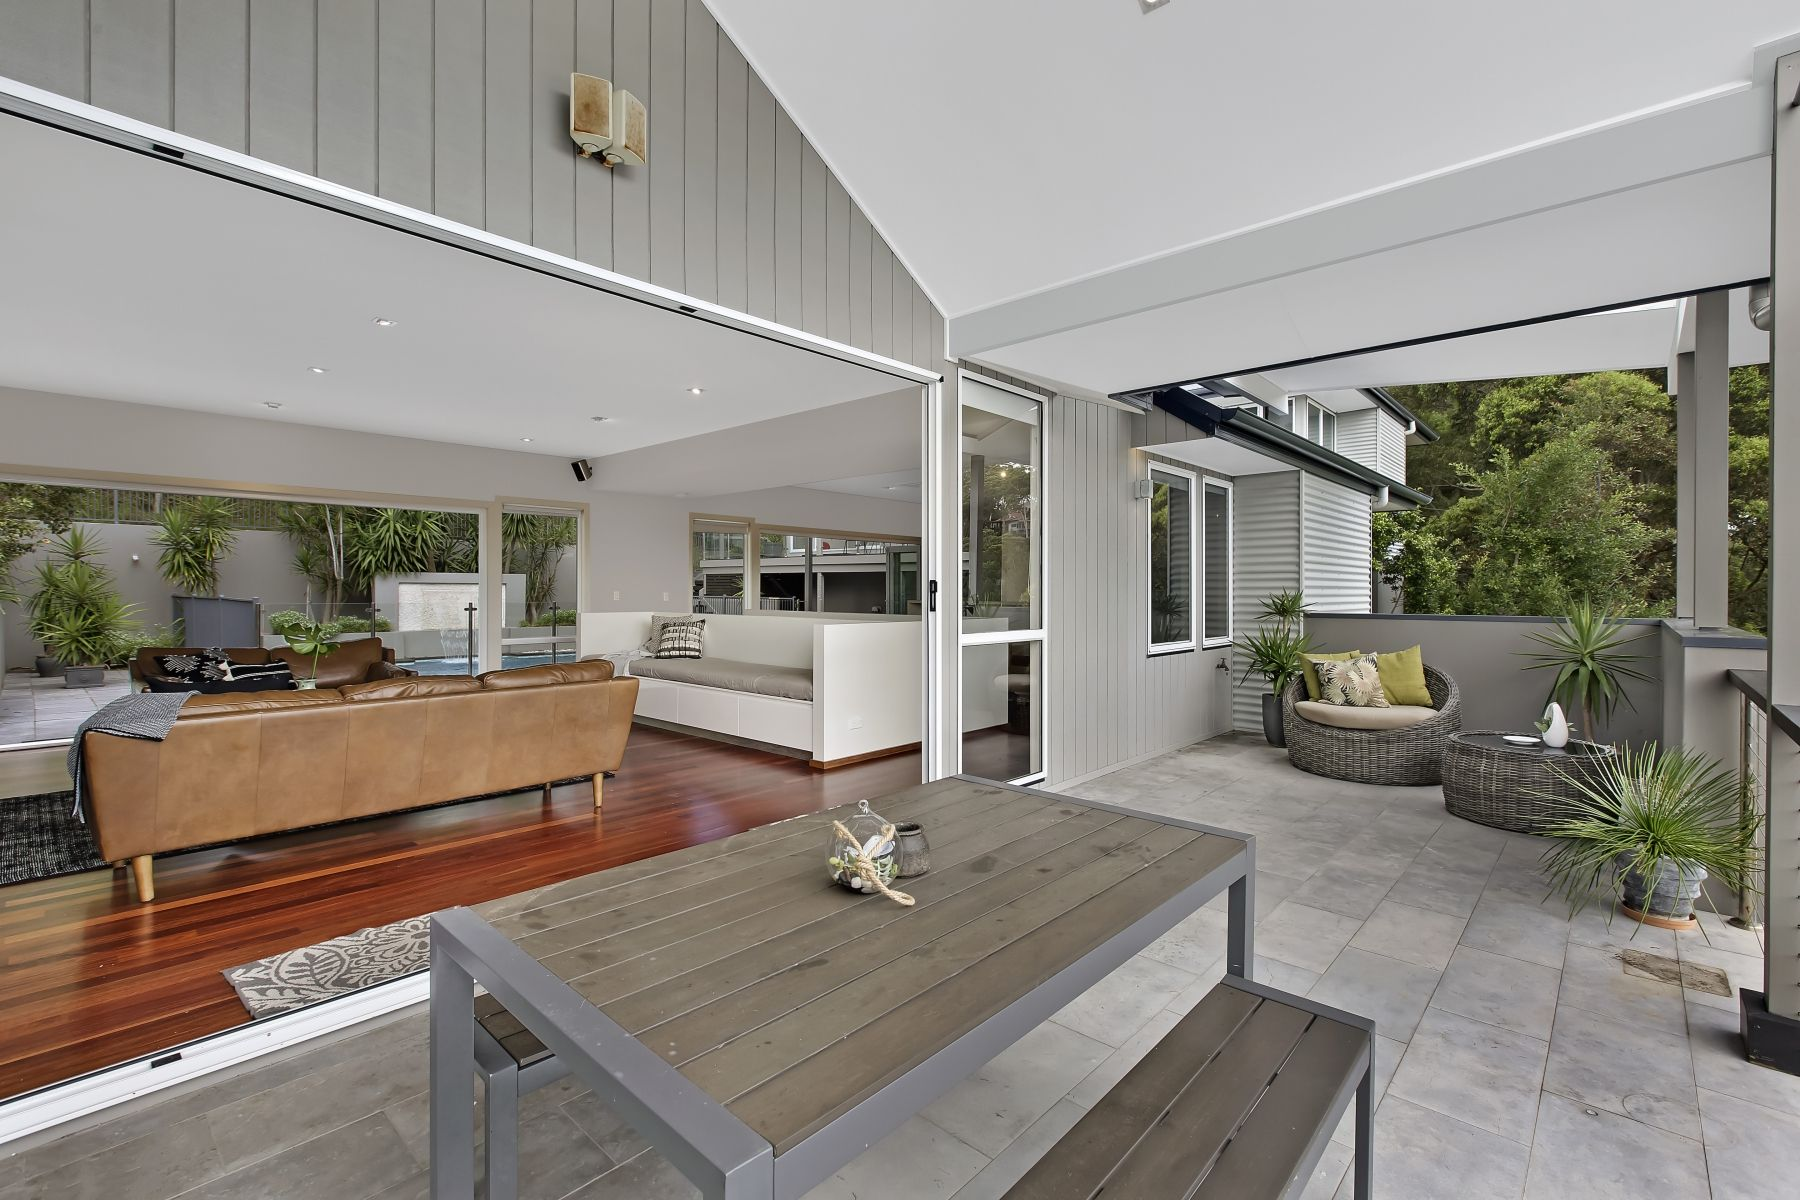 Avoca Beach Real Estate: Architectural Excellence